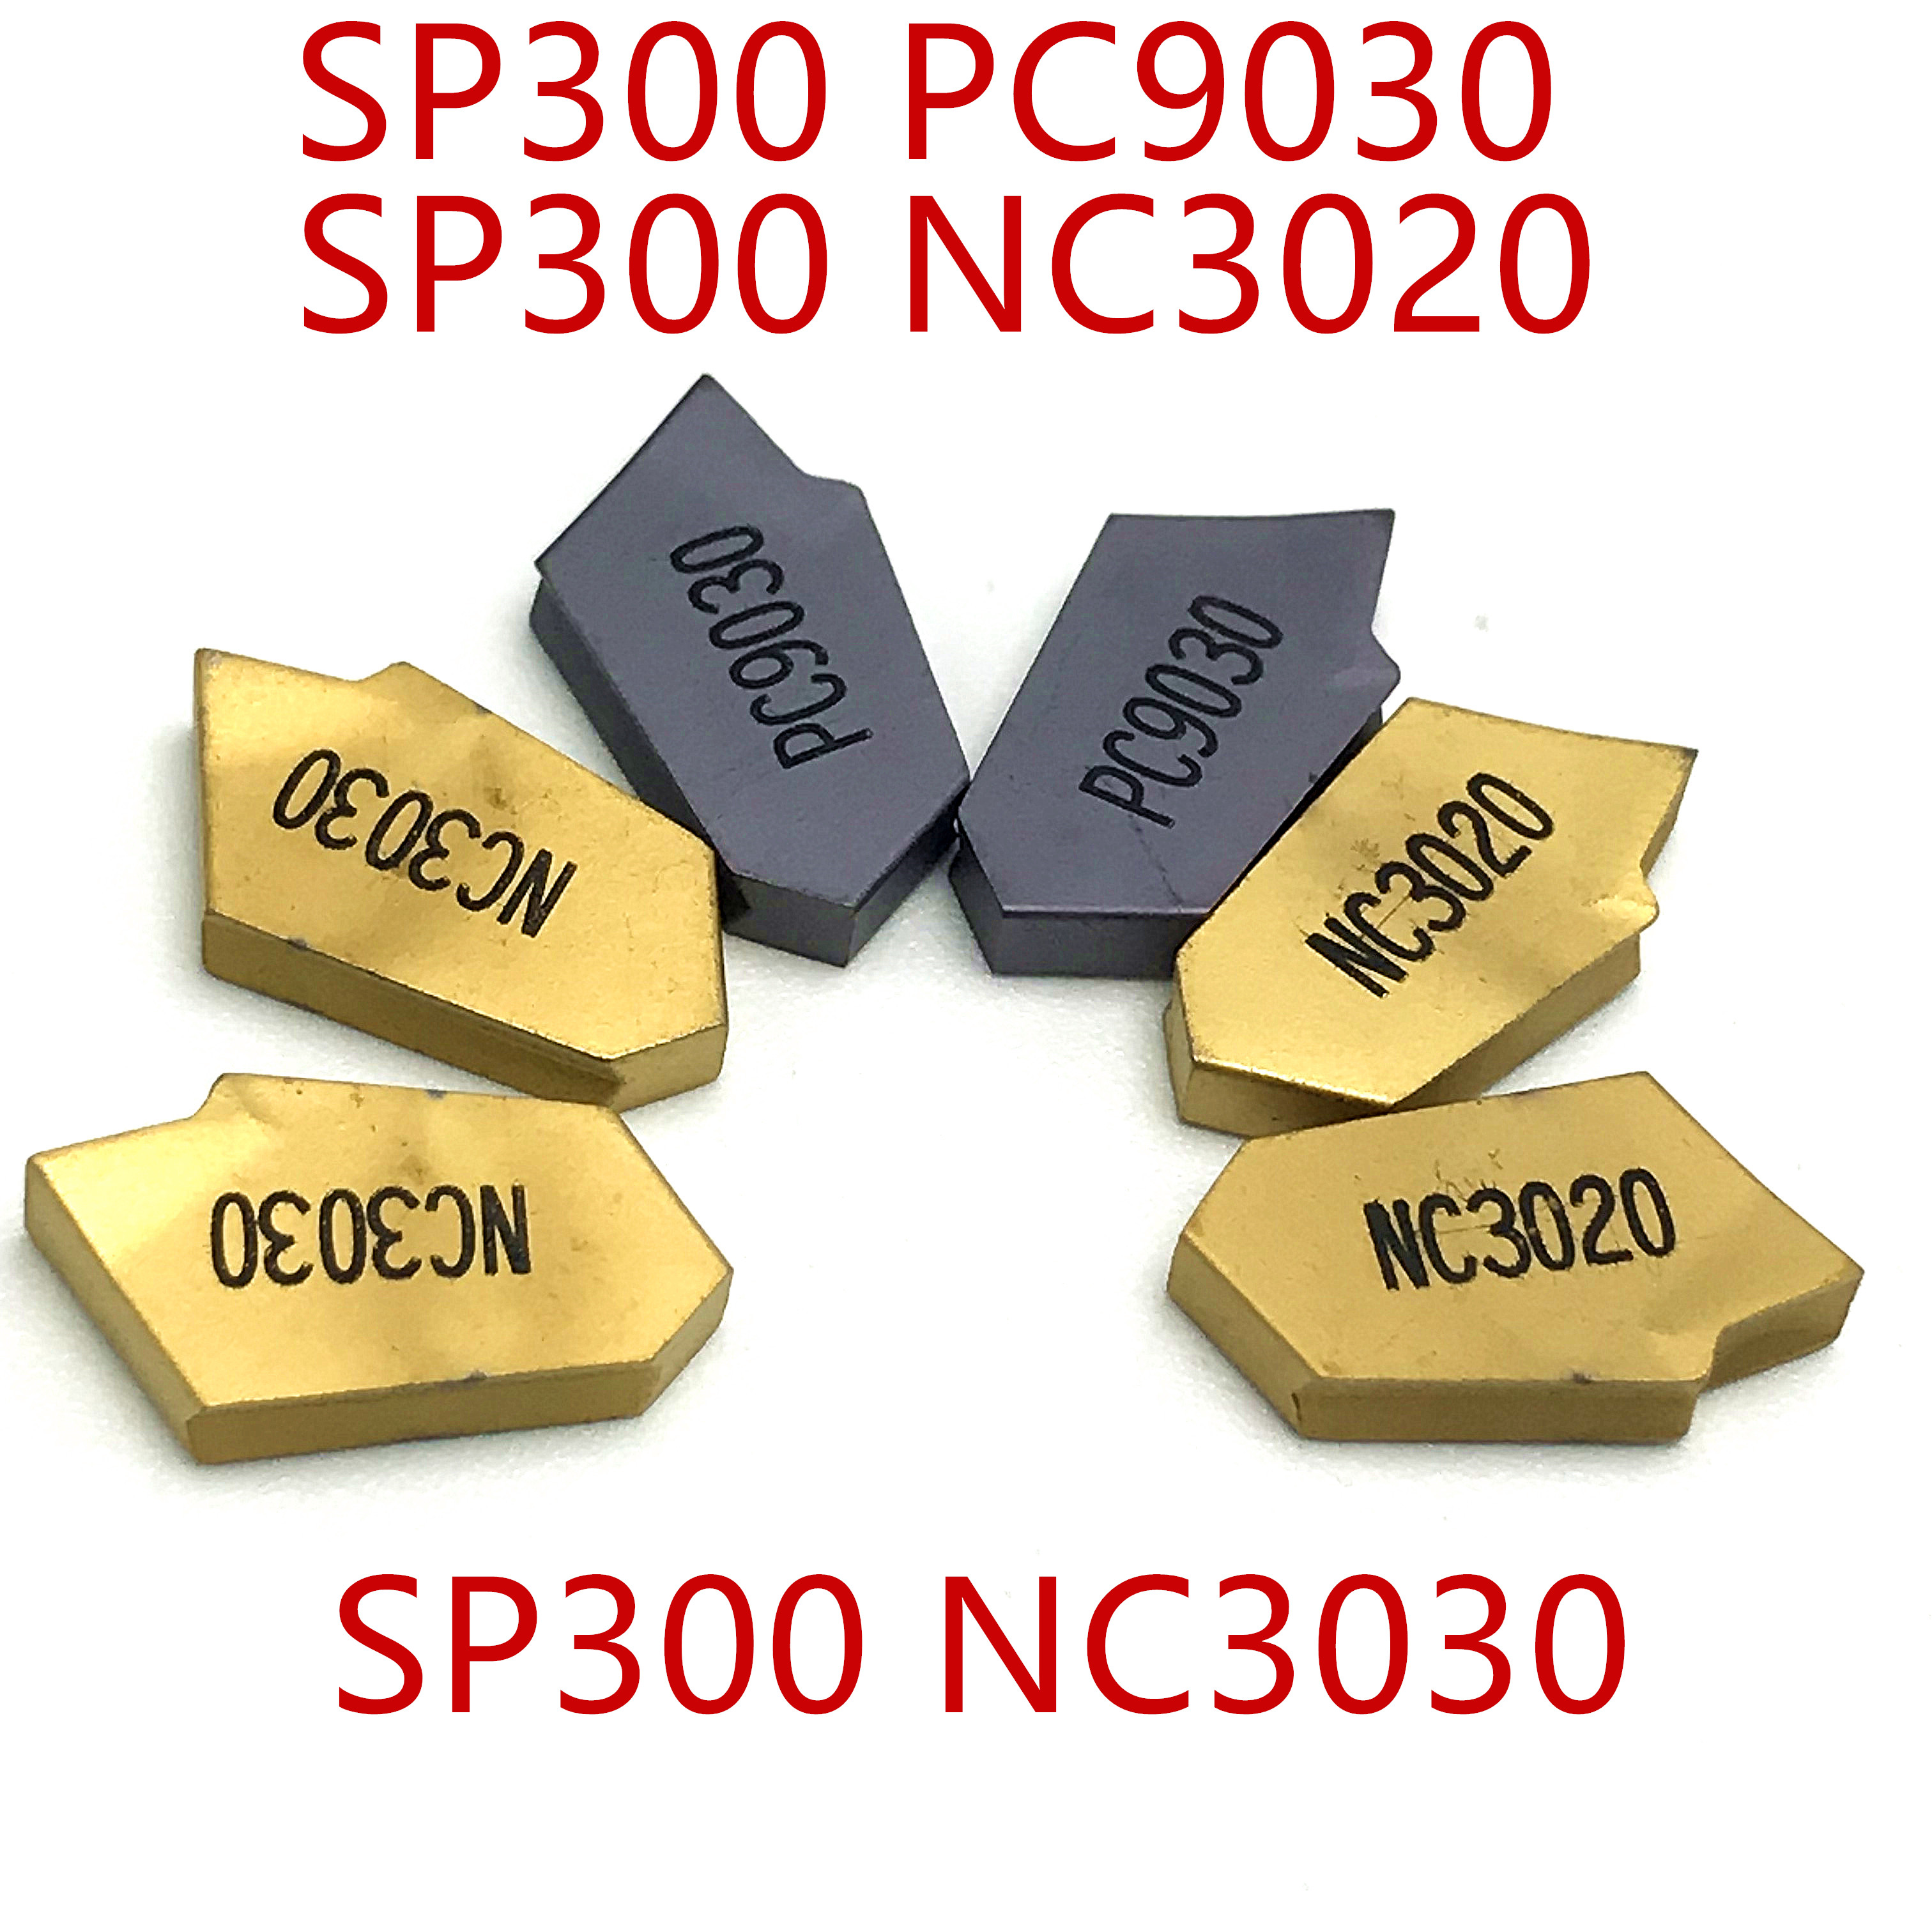 Grooving Turning Tool SP300 PC9030/NC3020 / NC3030 Carbide Insert SP 300 Lathe Tool CVD+PVD Tungsten Carbide